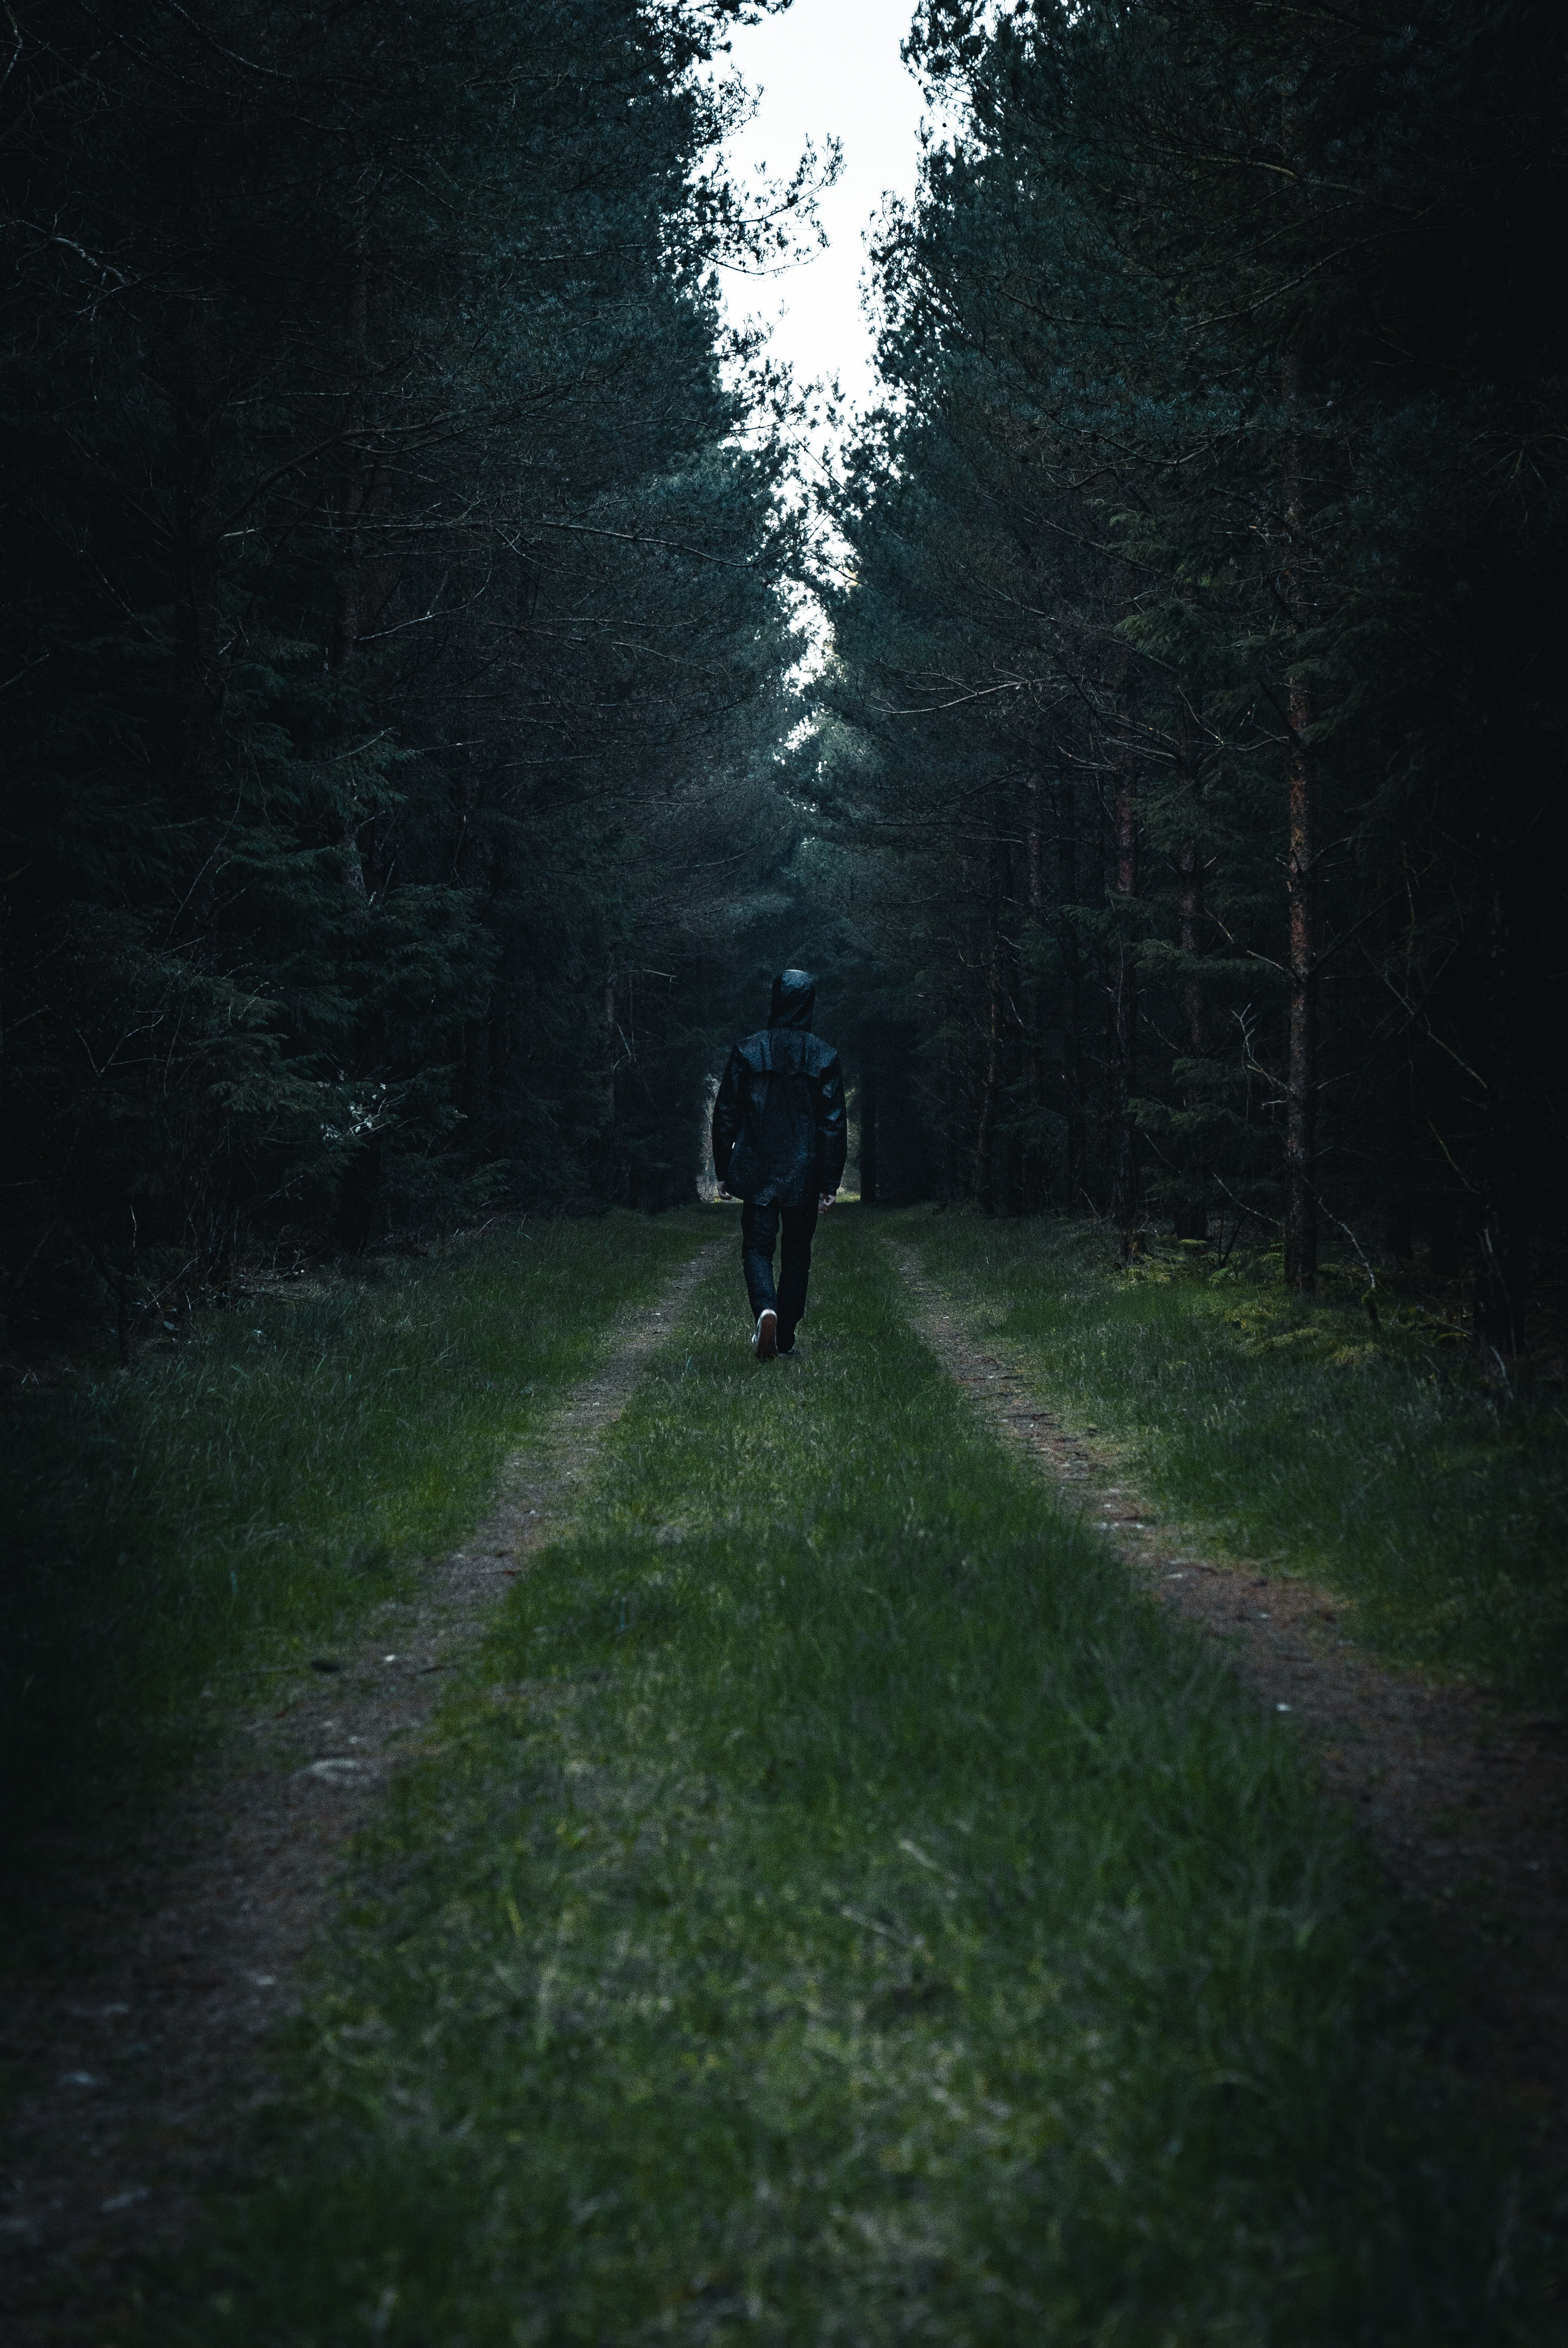 96150 Screensavers and Wallpapers Human for phone. Download Loneliness, Trees, Miscellanea, Miscellaneous, Road, Forest, Human, Person, Glade, Clearing pictures for free